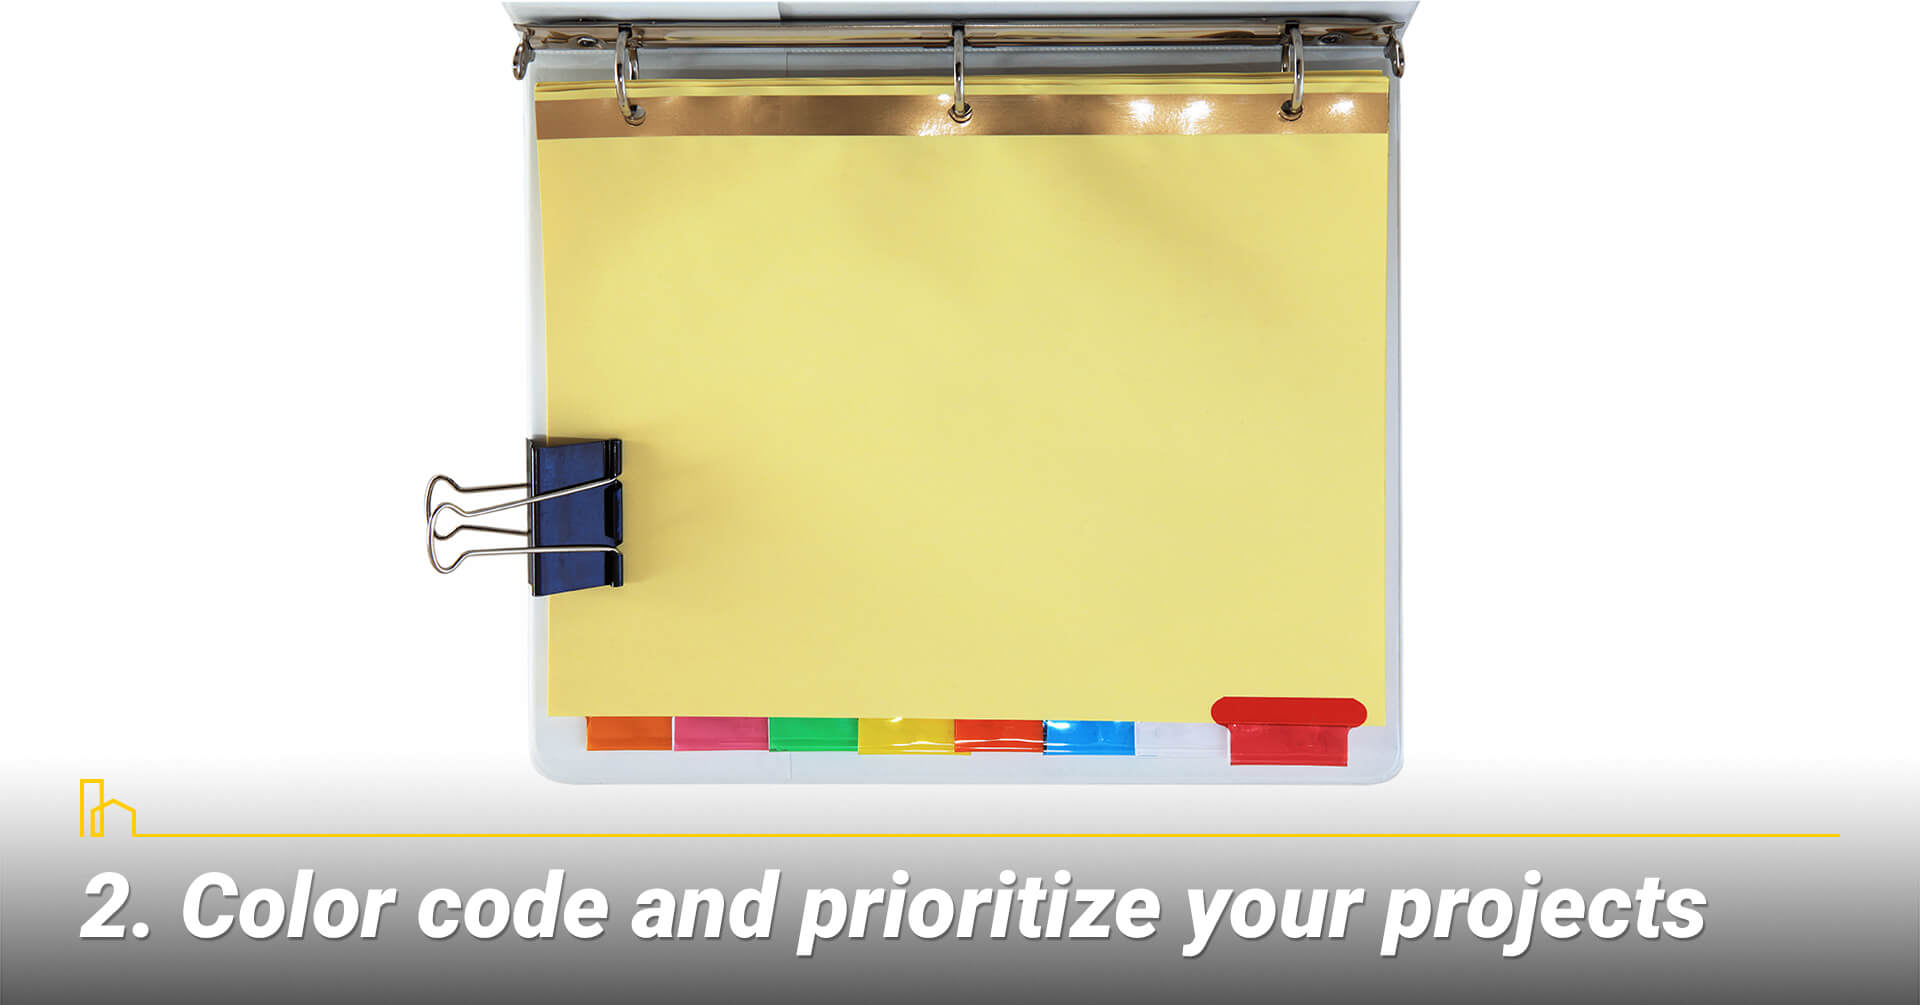 Color code and prioritize your projects, keep your projects organized